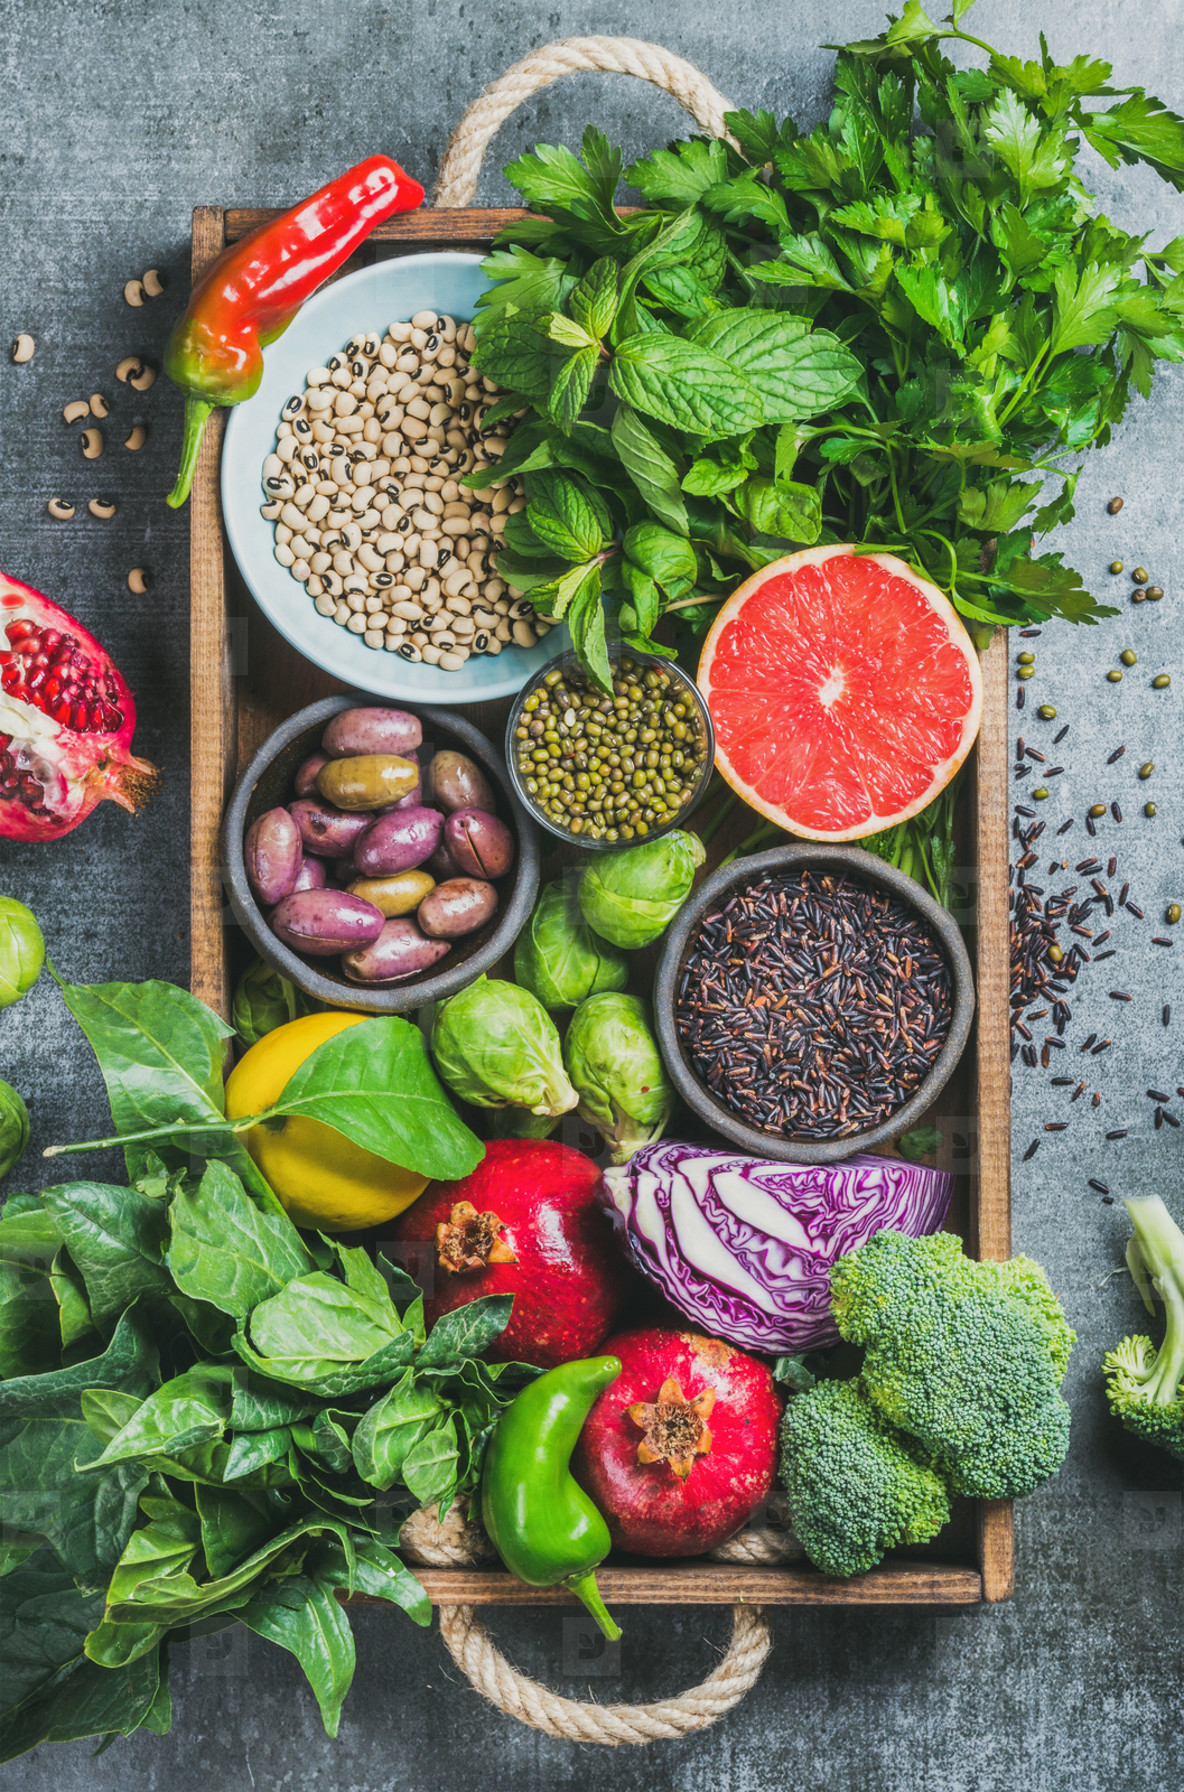 Fresh vegetables and fruits  seeds  cereals  beans  spices  superfoods  herbs